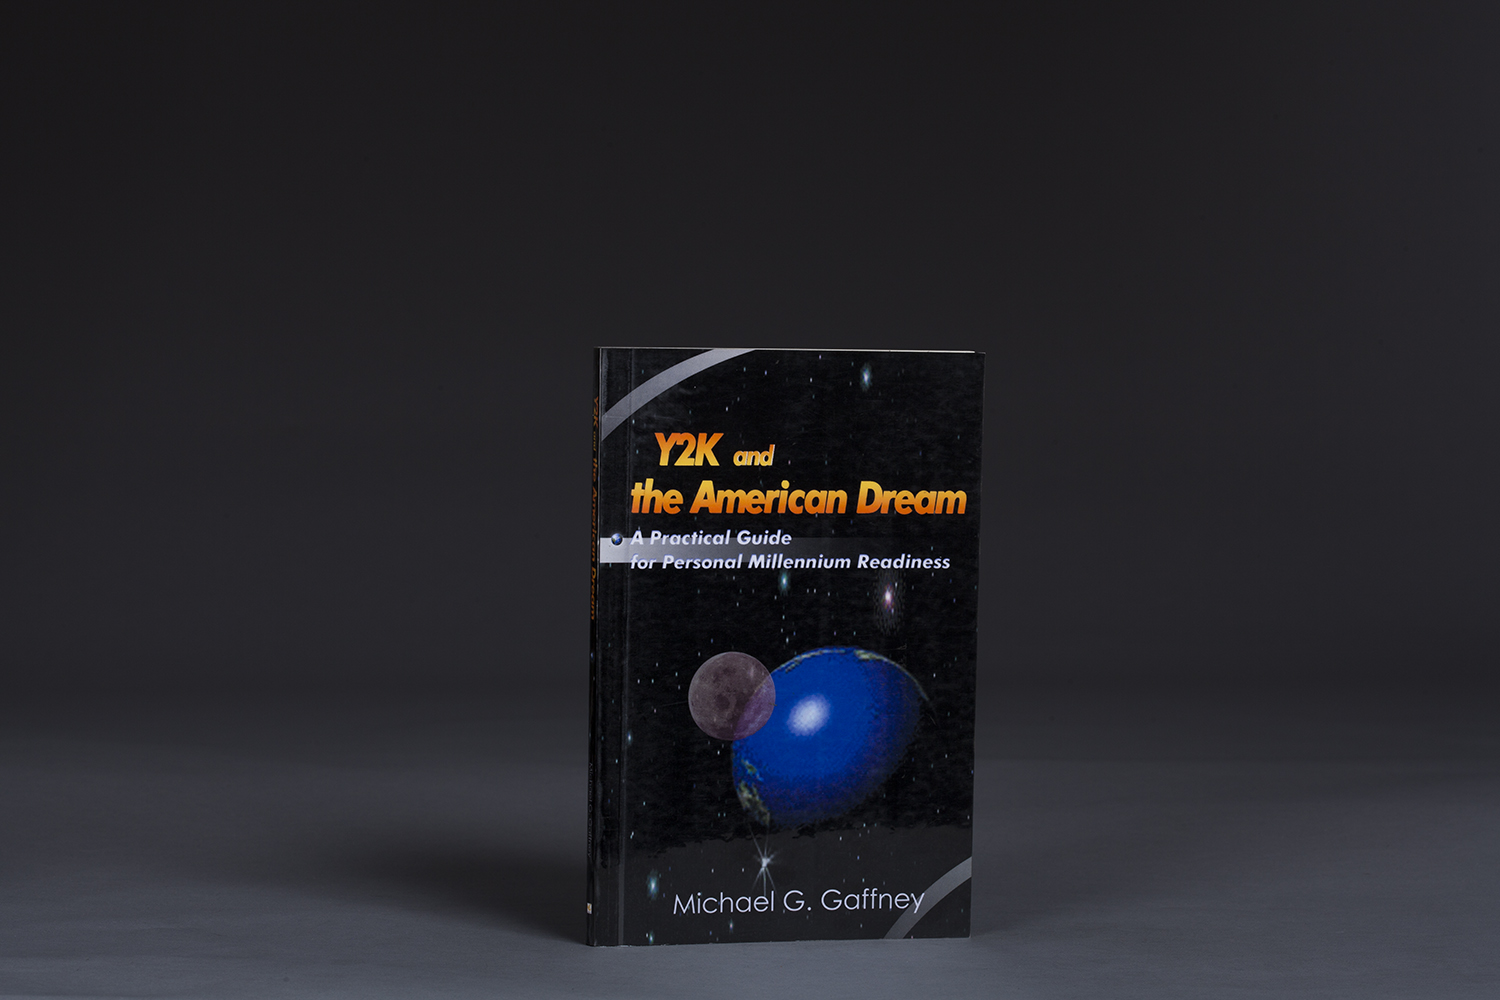 Y2K and the American Dream - A Practical Guide - 0458 Cover.jpg